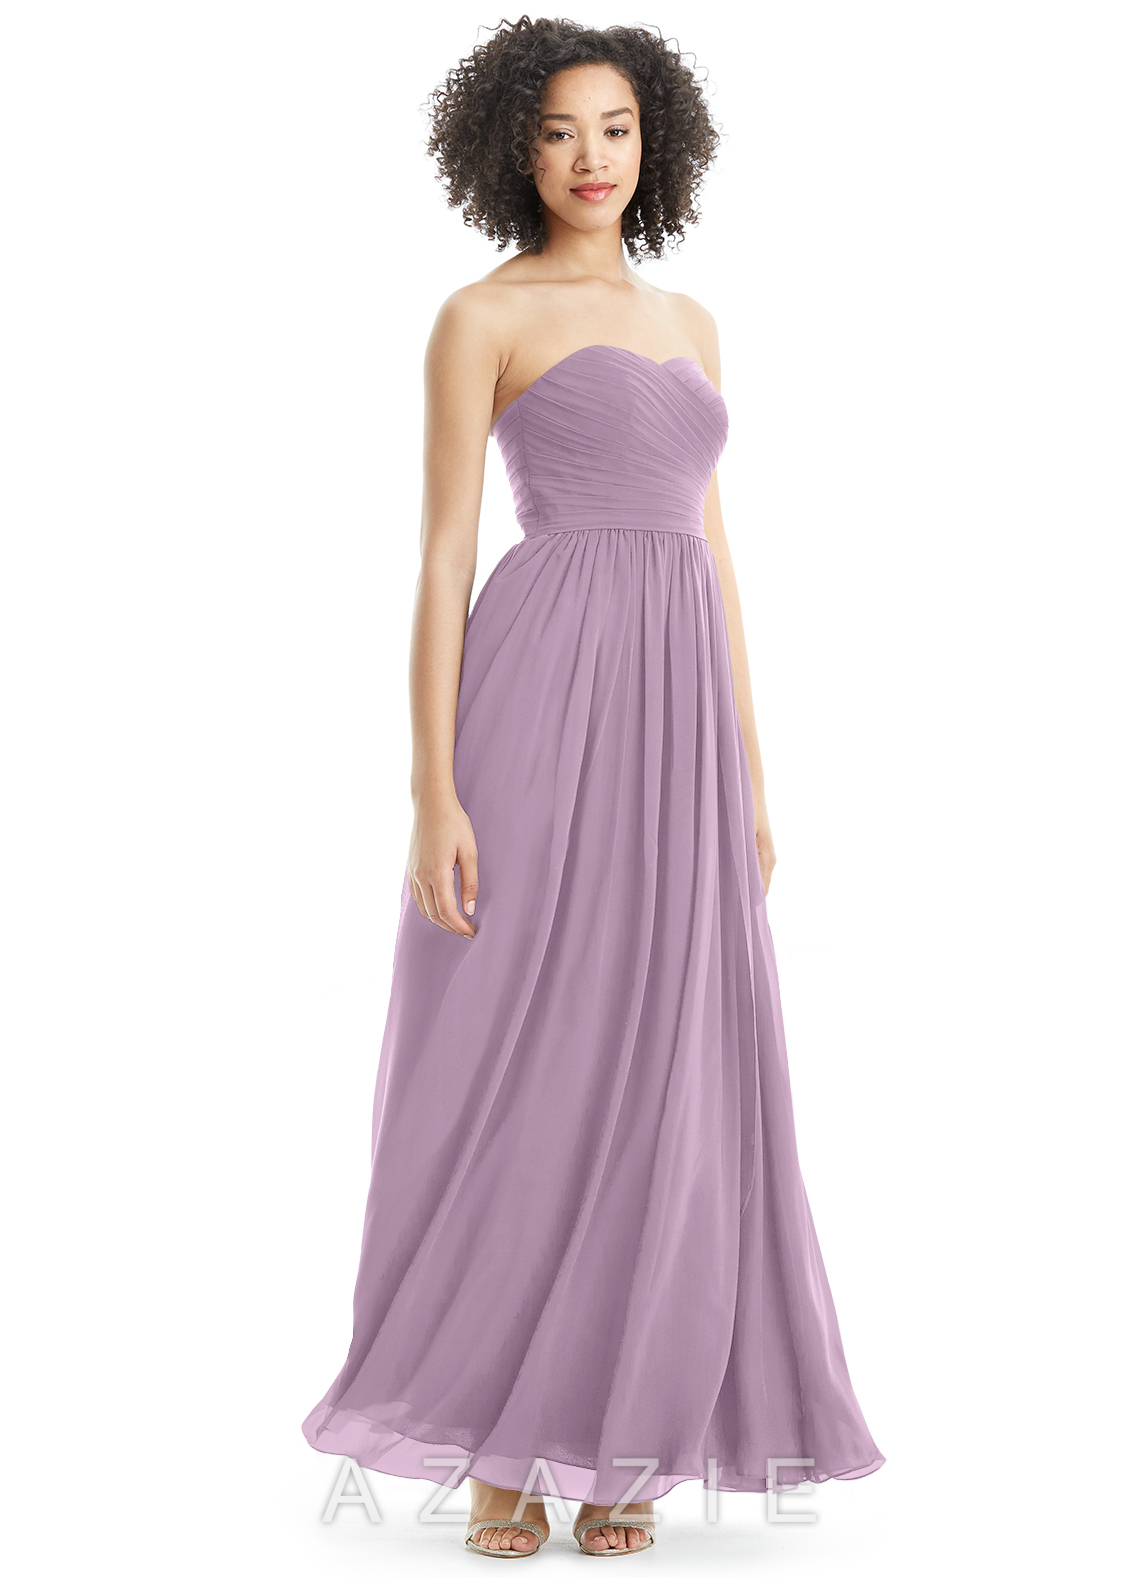 Azazie jasmine bridesmaid dress azazie home bridesmaid dresses azazie jasmine azazie jasmine loading zoom ombrellifo Images